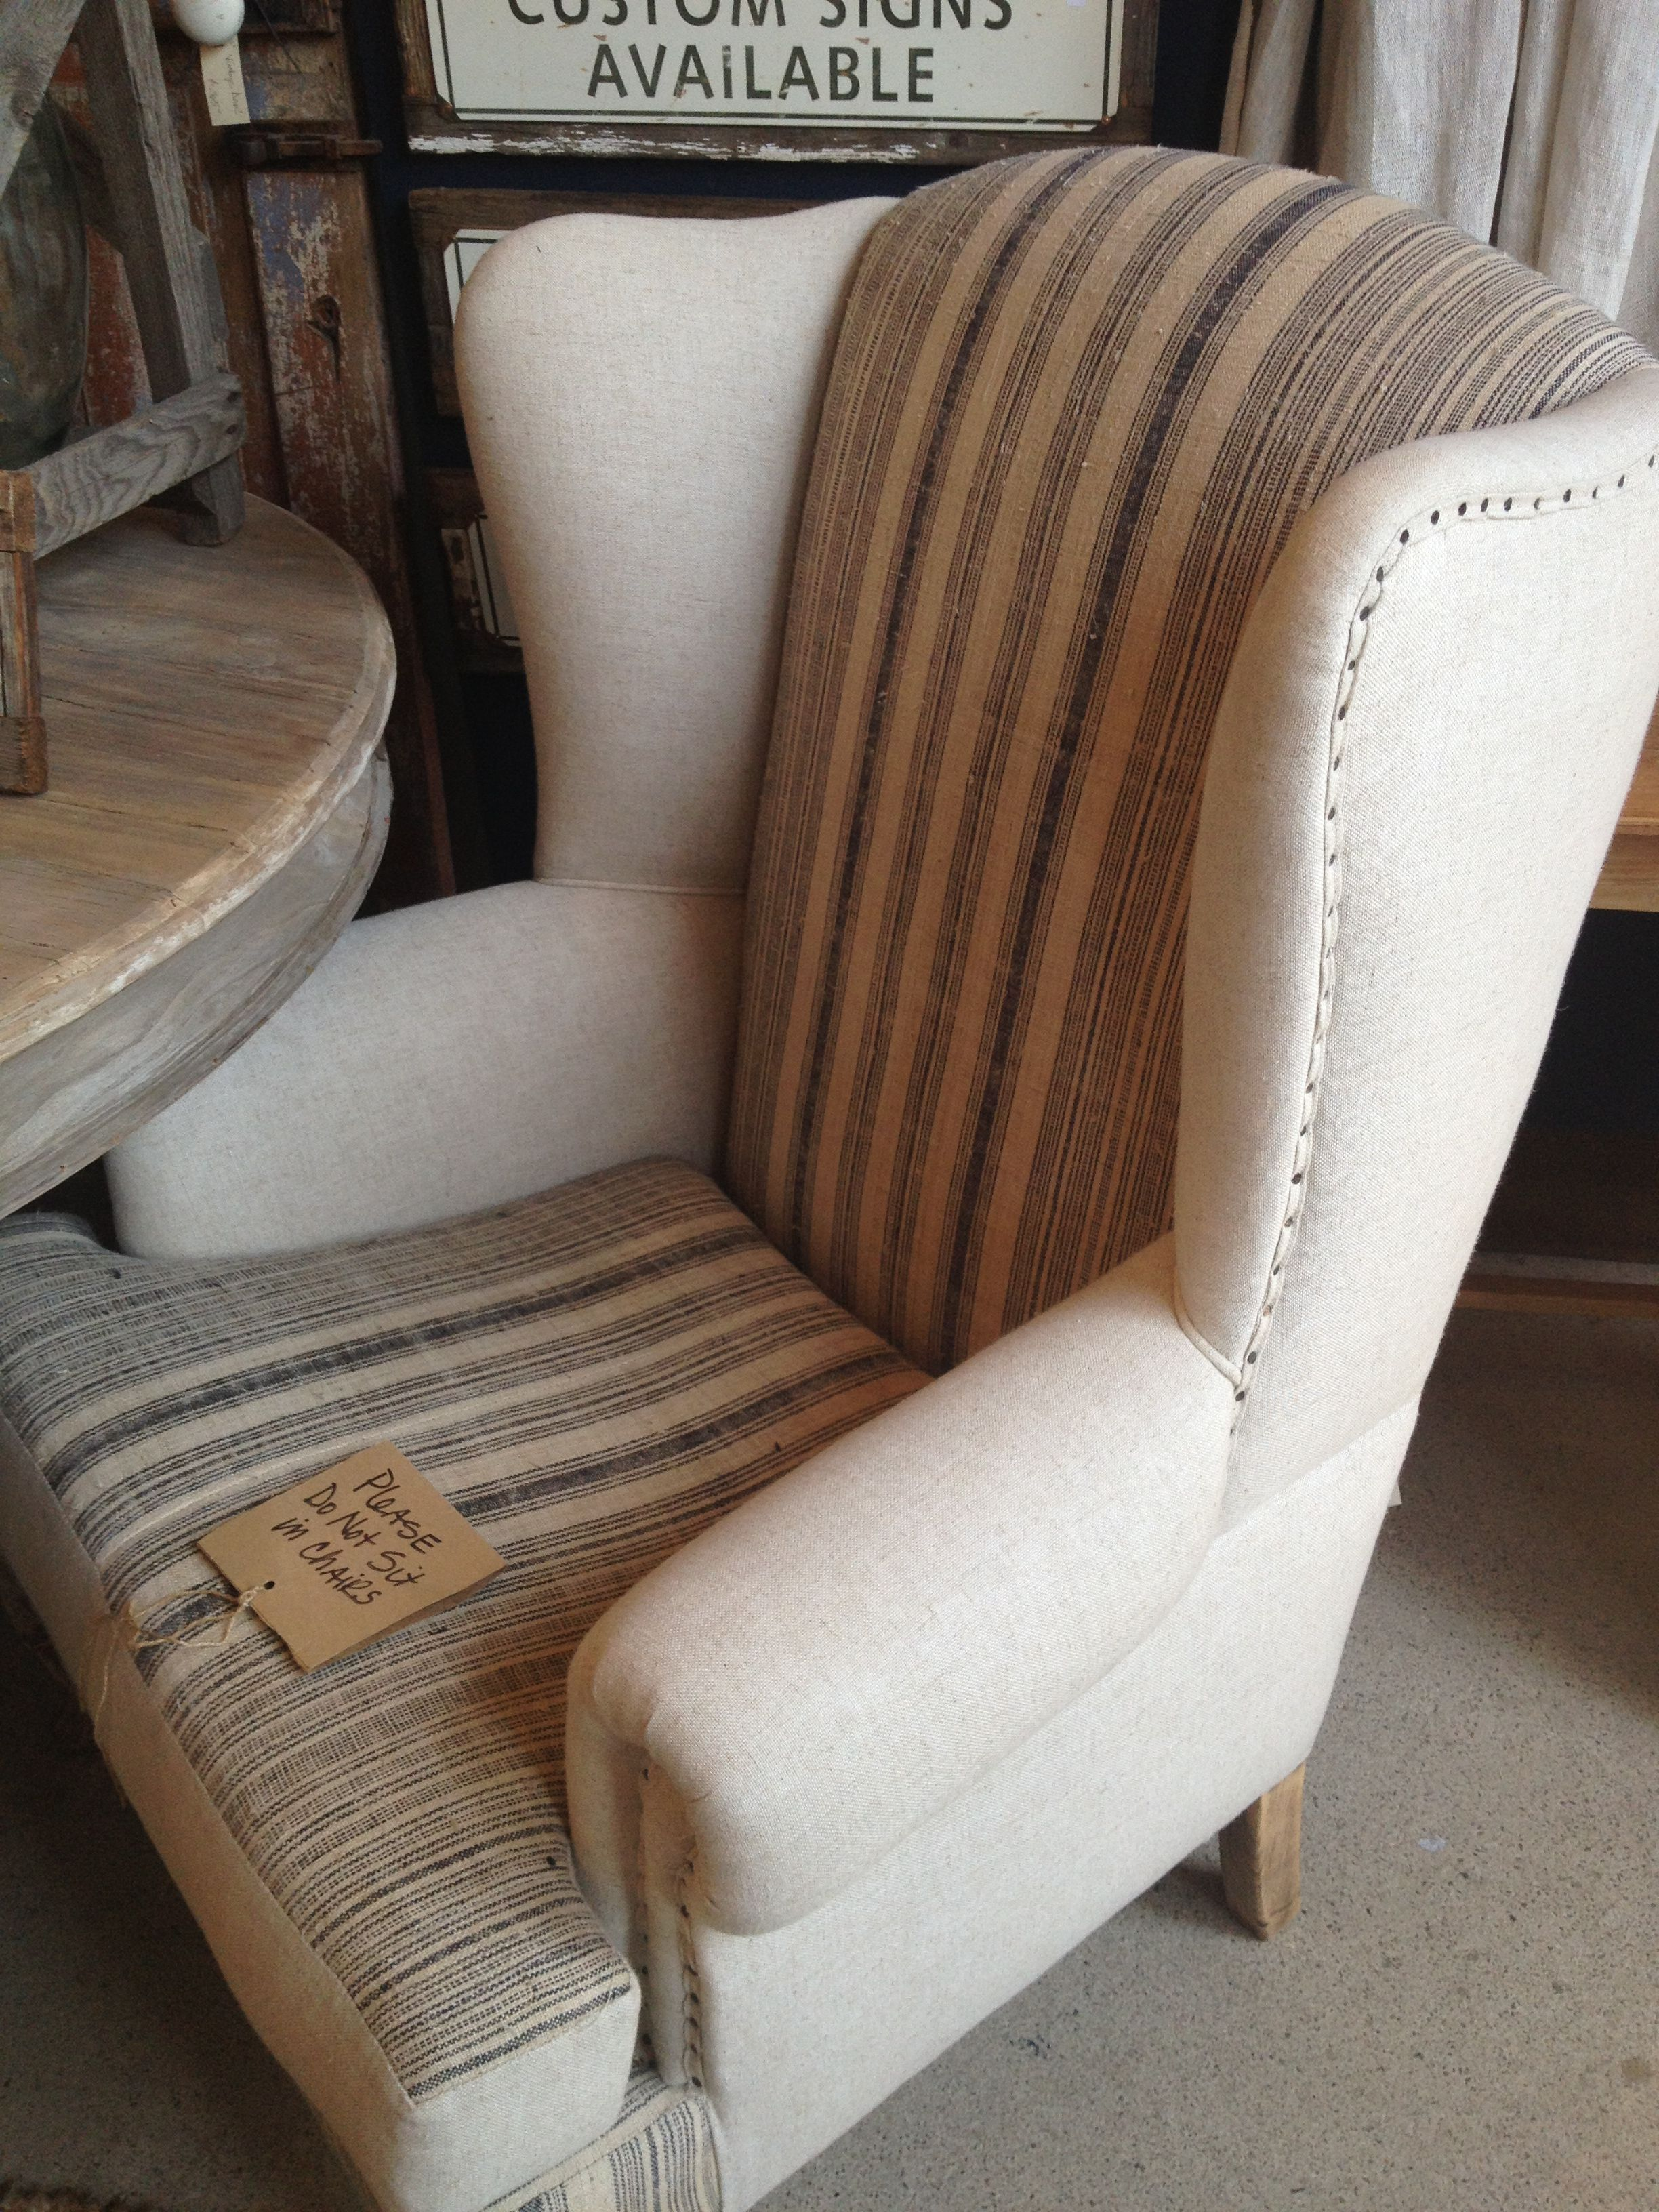 6 Miraculous Tricks Upholstery Stool Upholstery Studio Pillows Upholstery Couch Projects Upholster Living Room Upholstery Couch Upholstery Upholstery Cushions